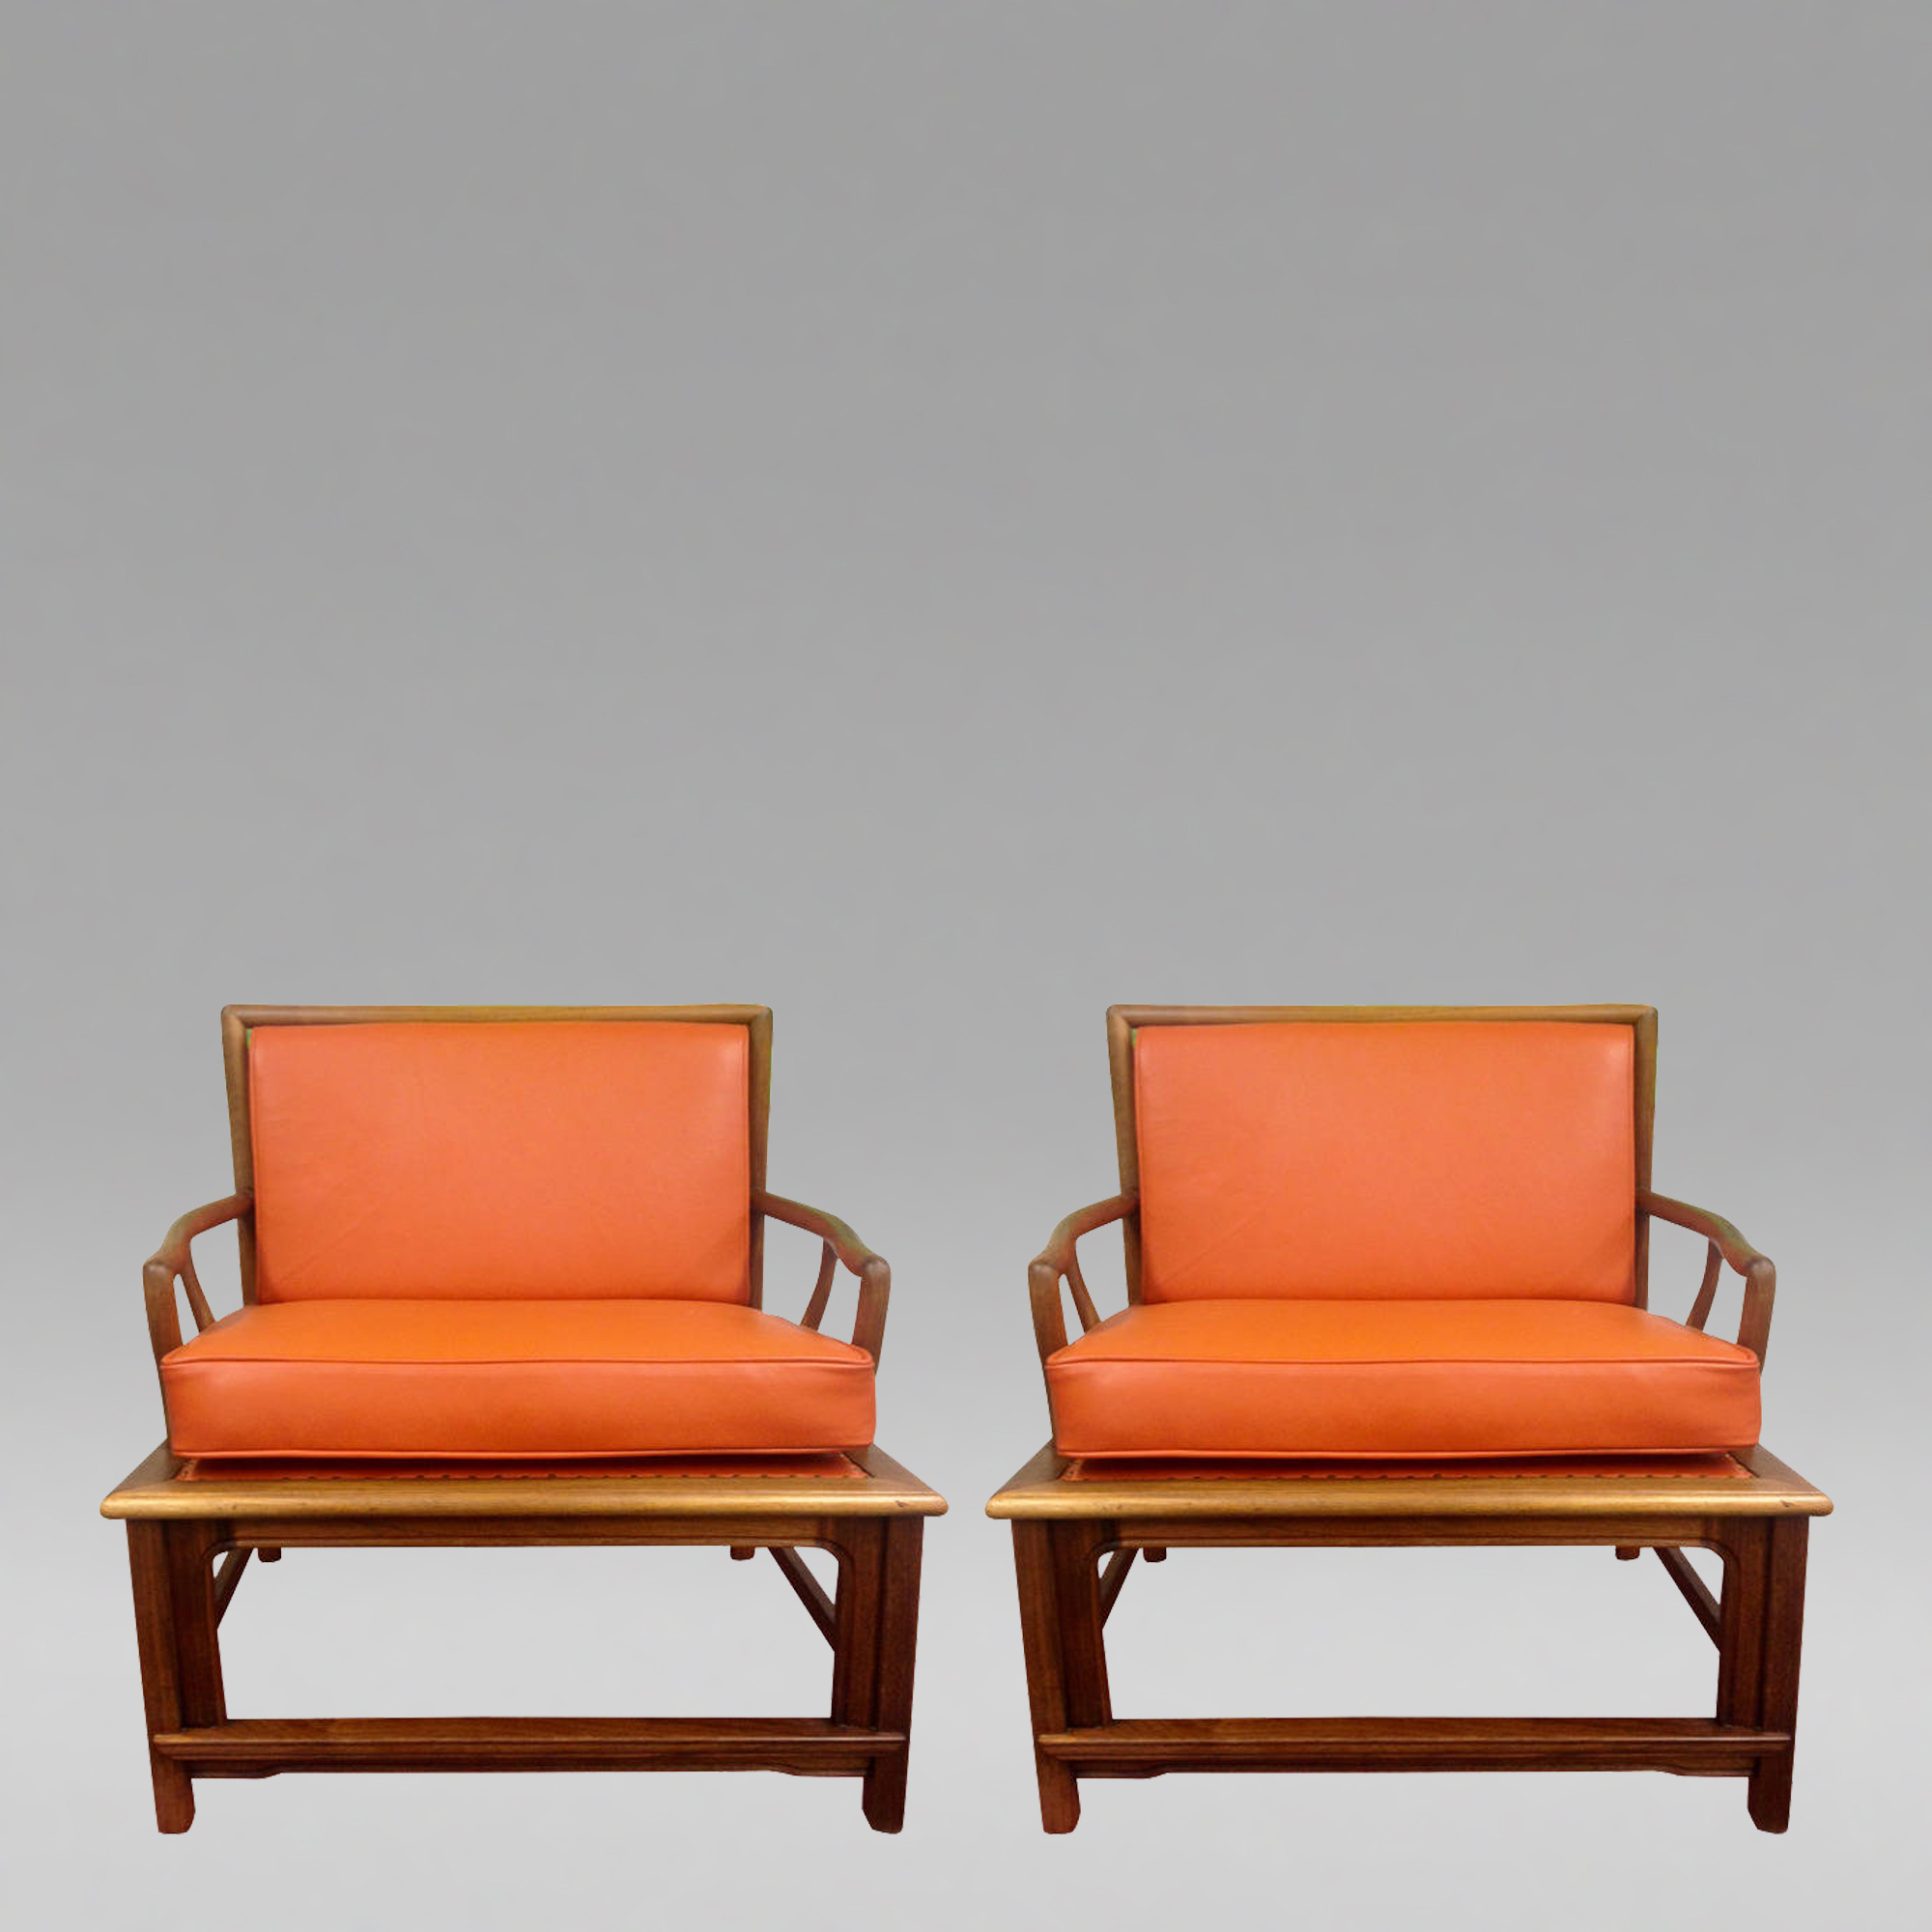 Mid Century Modern Furniture and Design Shine at the Los Angeles